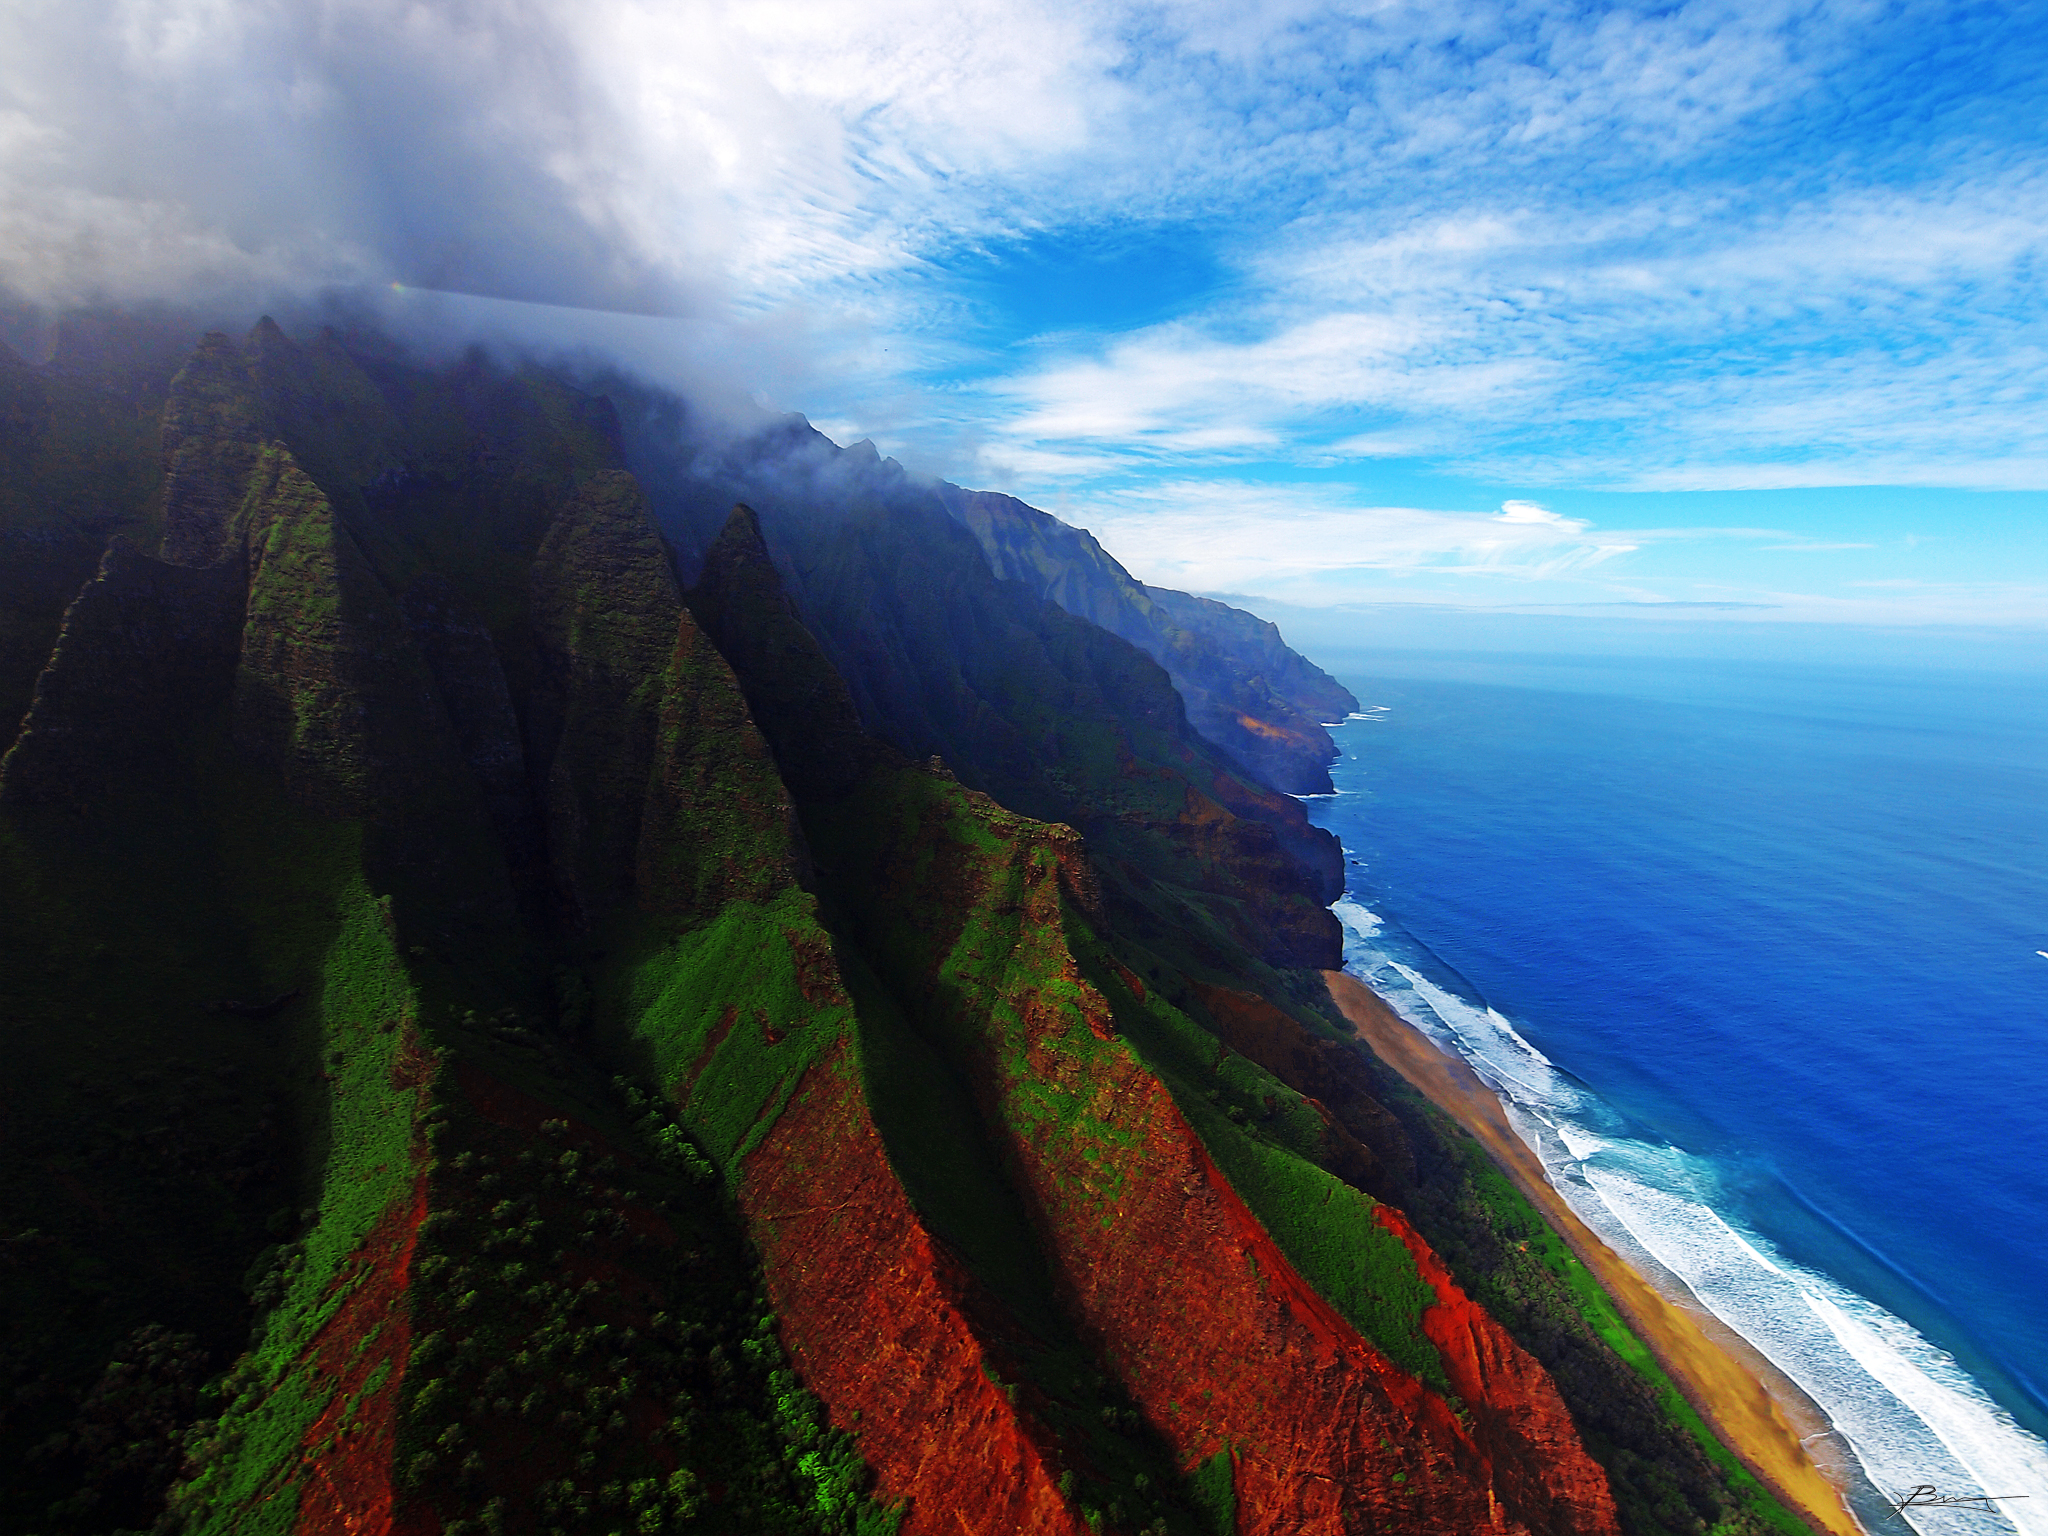 helicopter tour san go with File Coast Of Kauai  Hawaii on 10 Best Honeymoon Locations as well File Coast of Kauai  Hawaii in addition Ed Sheeran Tattoos moreover Go Cars San Francisco Groupon additionally New York Central Park Most Romantic.